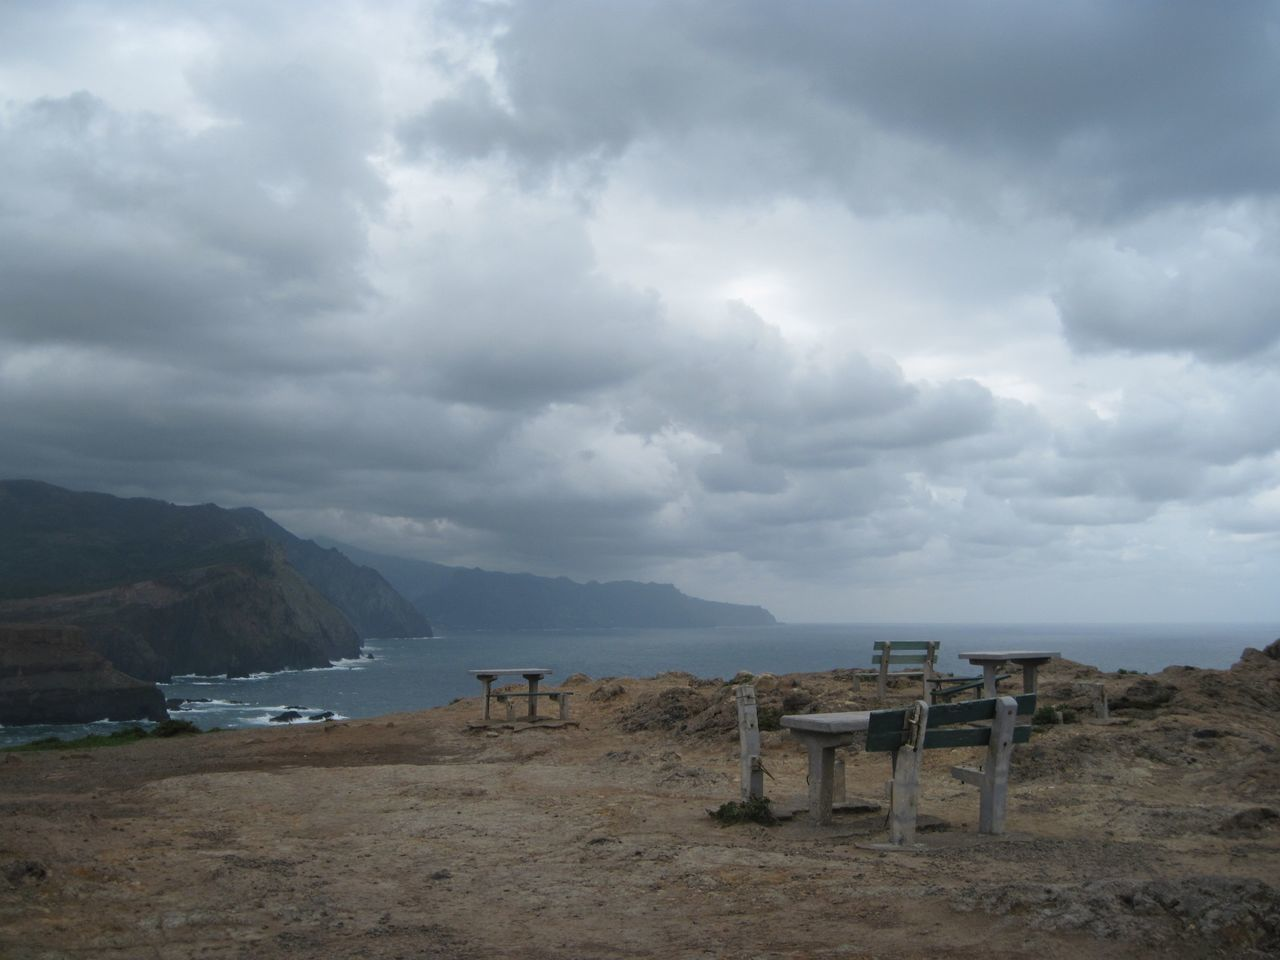 Abandoned Beauty In Nature Cloud - Sky Clouds Day Madeira Mountain Nature No People Outdoors Picknickbench Ponta De São Lourenço Scenics Sea Sky Tranquil Scene Tranquility Water Travel Destinations